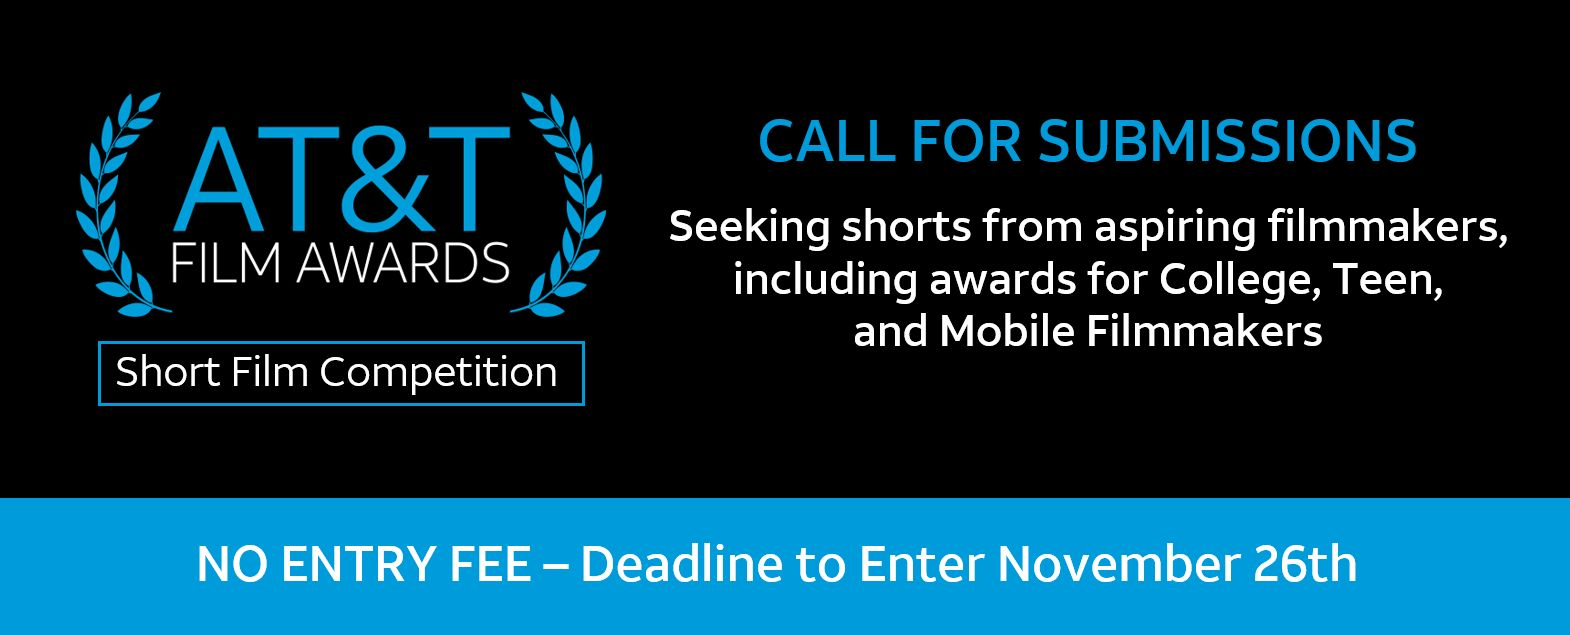 Emerging Filmmakers: Enter your Short Film for a Chance at Up To $50K in Prizes